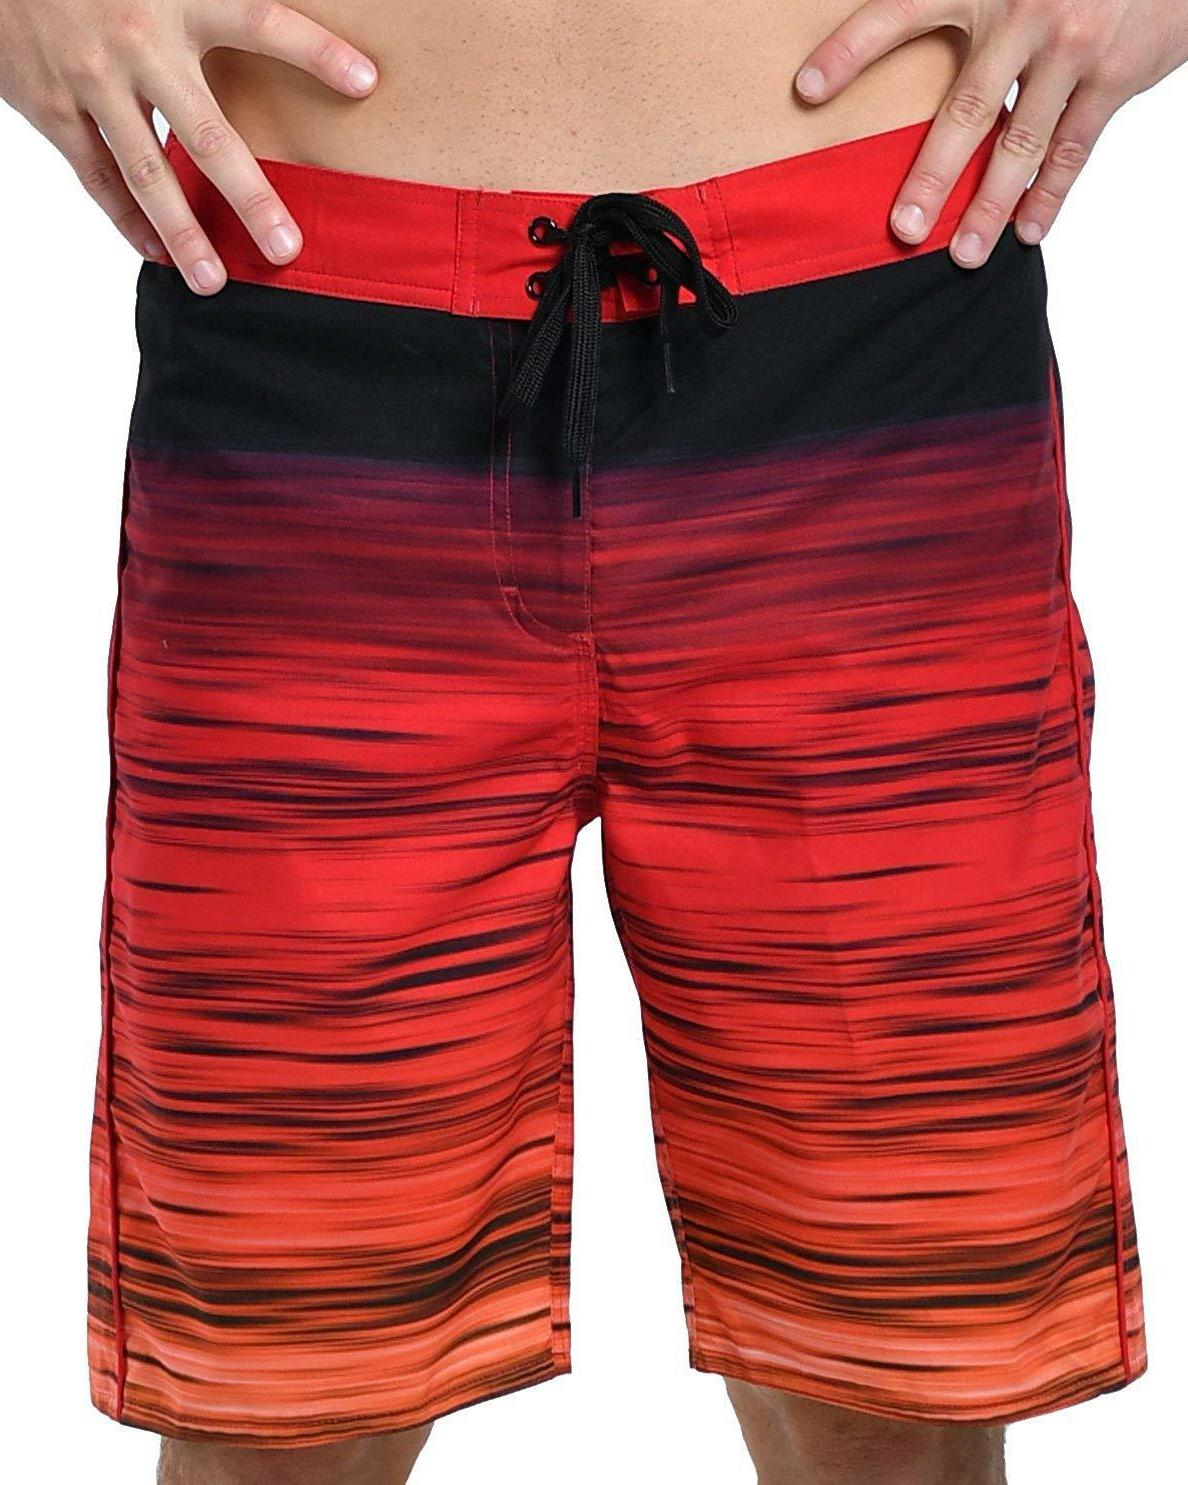 US Apparel Color Microfiber Board Shorts